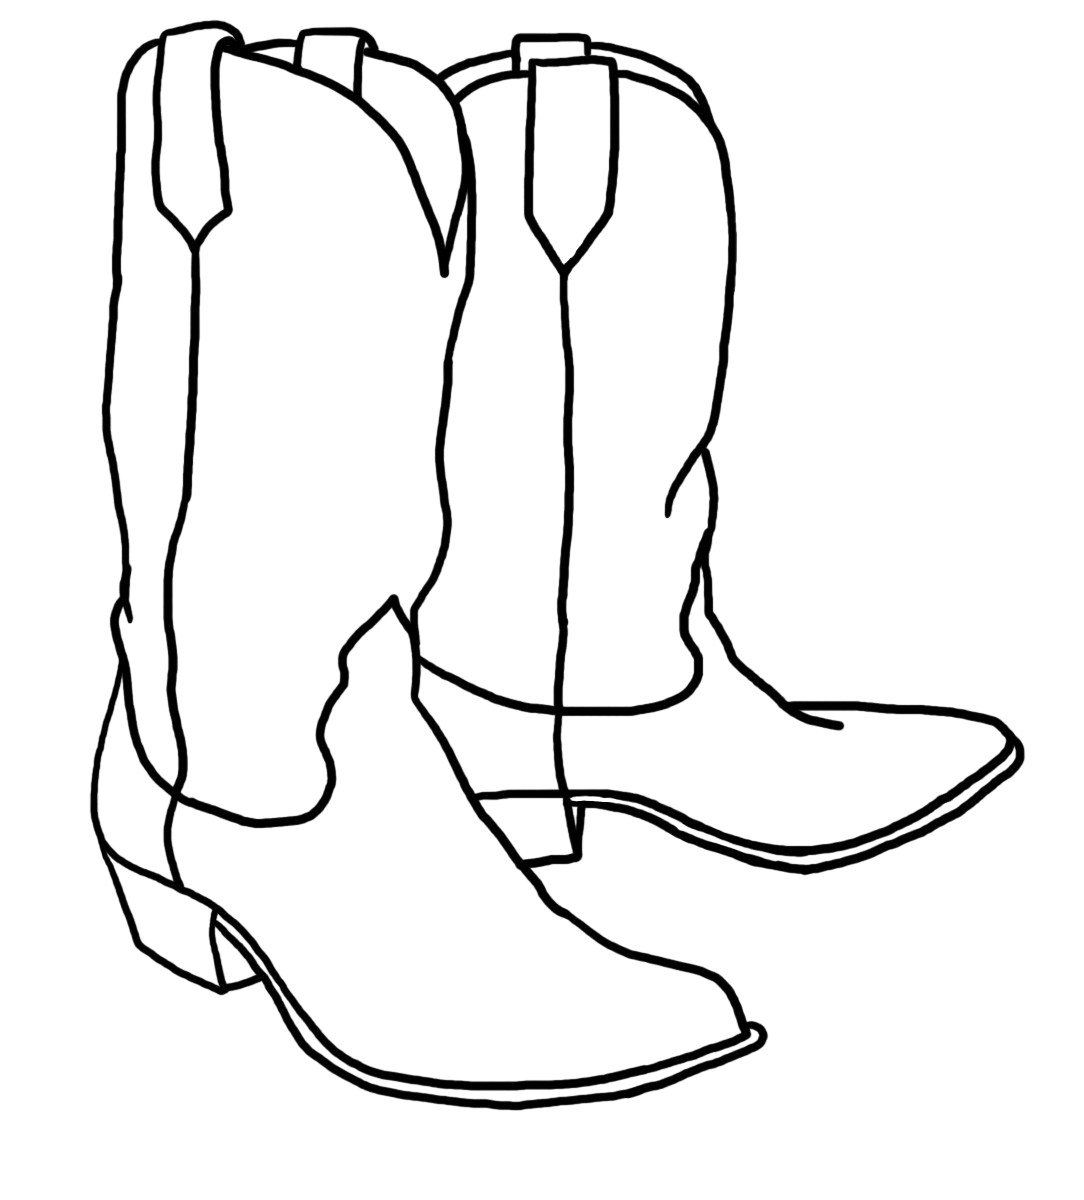 Cowboy boots clipart black and white 3 » Clipart Station.